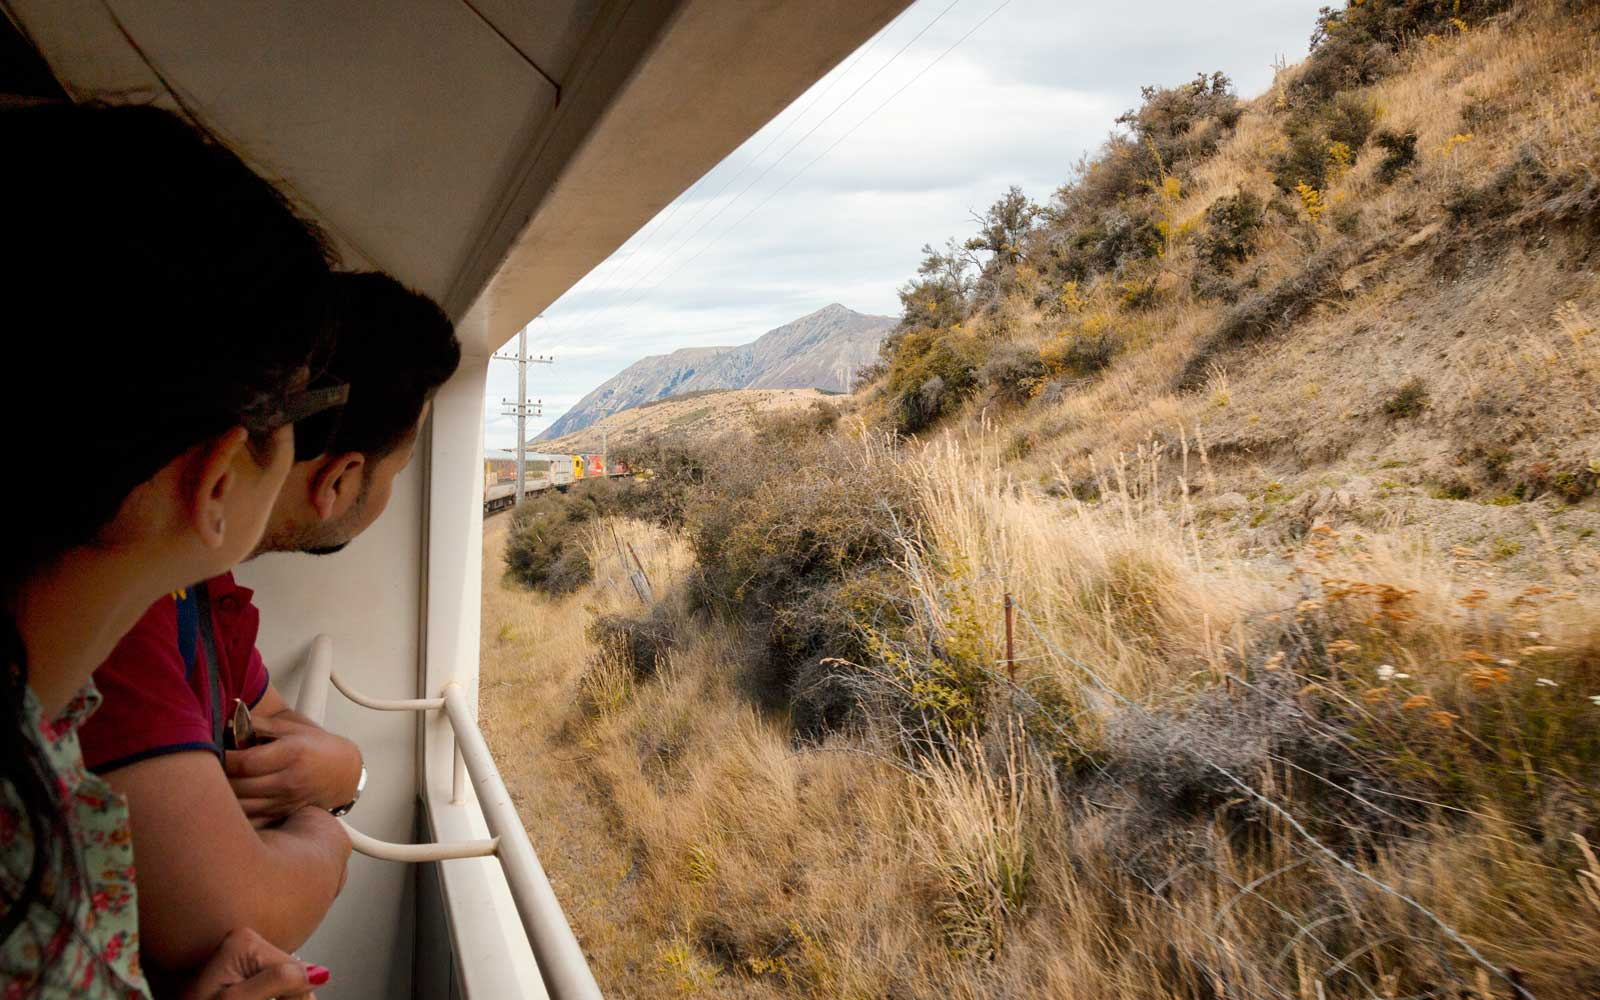 Passengers on a train traveling through the rural landscape of New Zealand